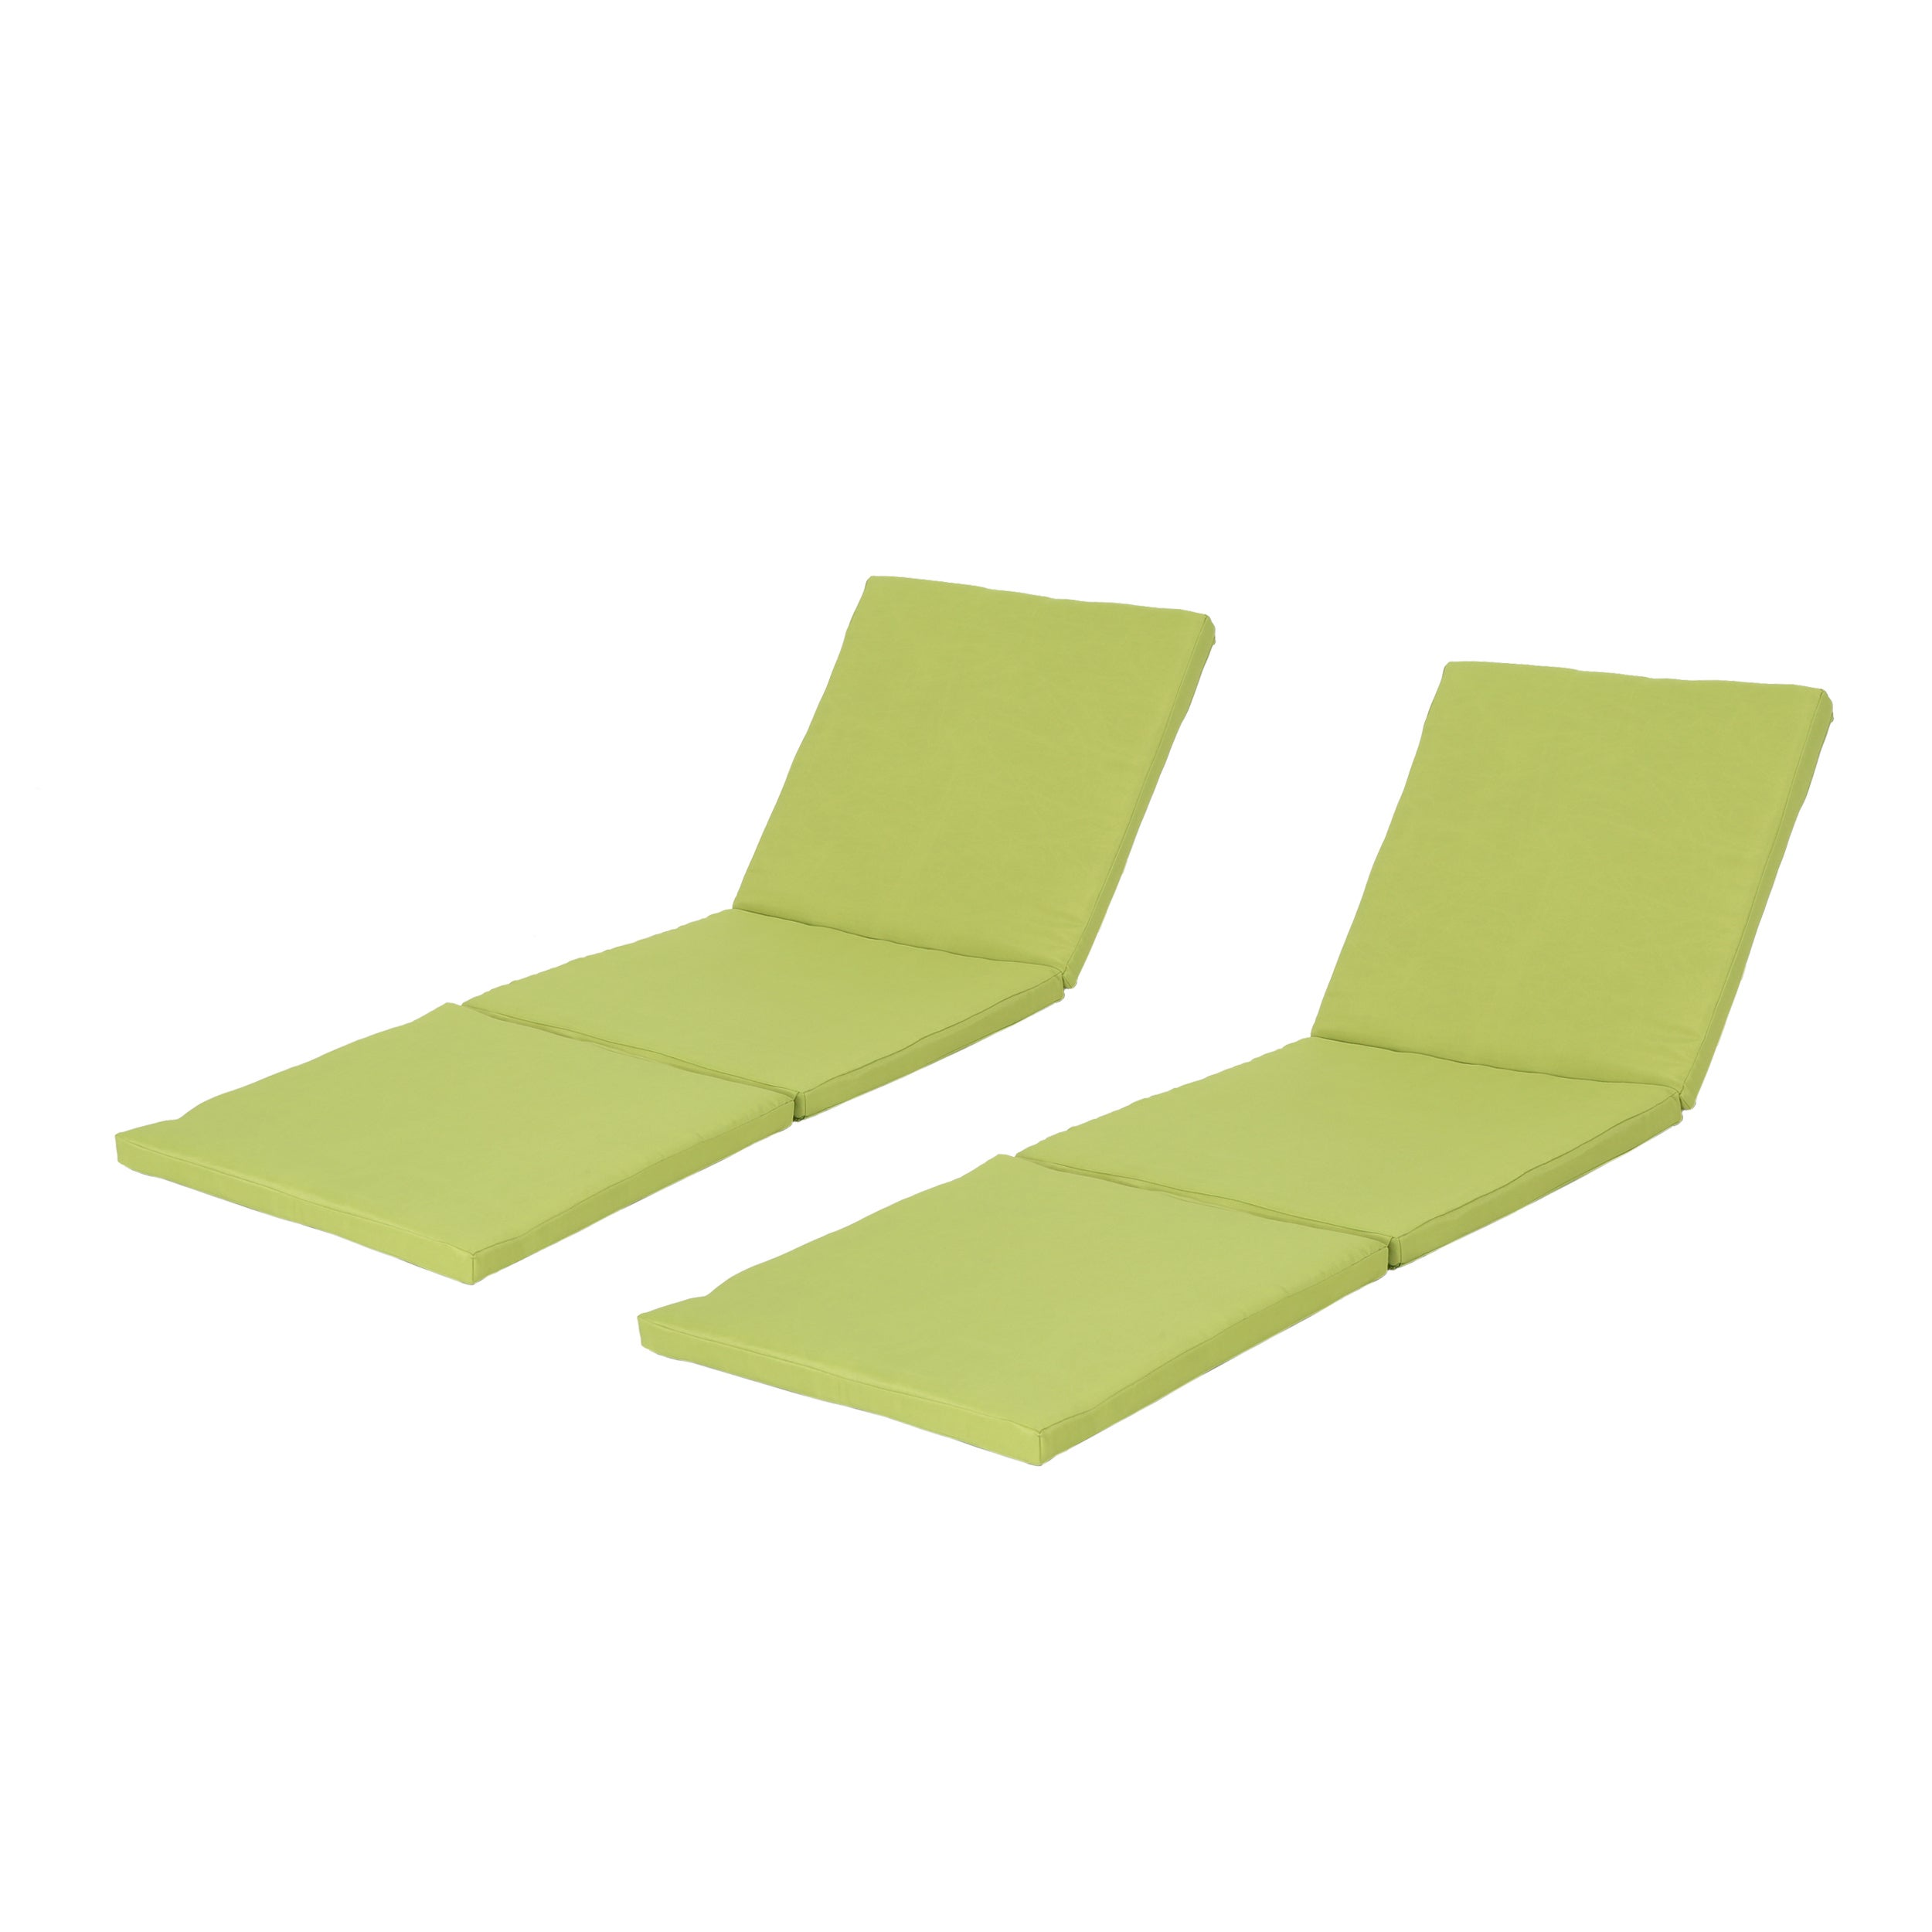 cushions indooroutdoor sale outdoor christian logan wayfair pdx chaise on lounge down wade reviews indoor cushion